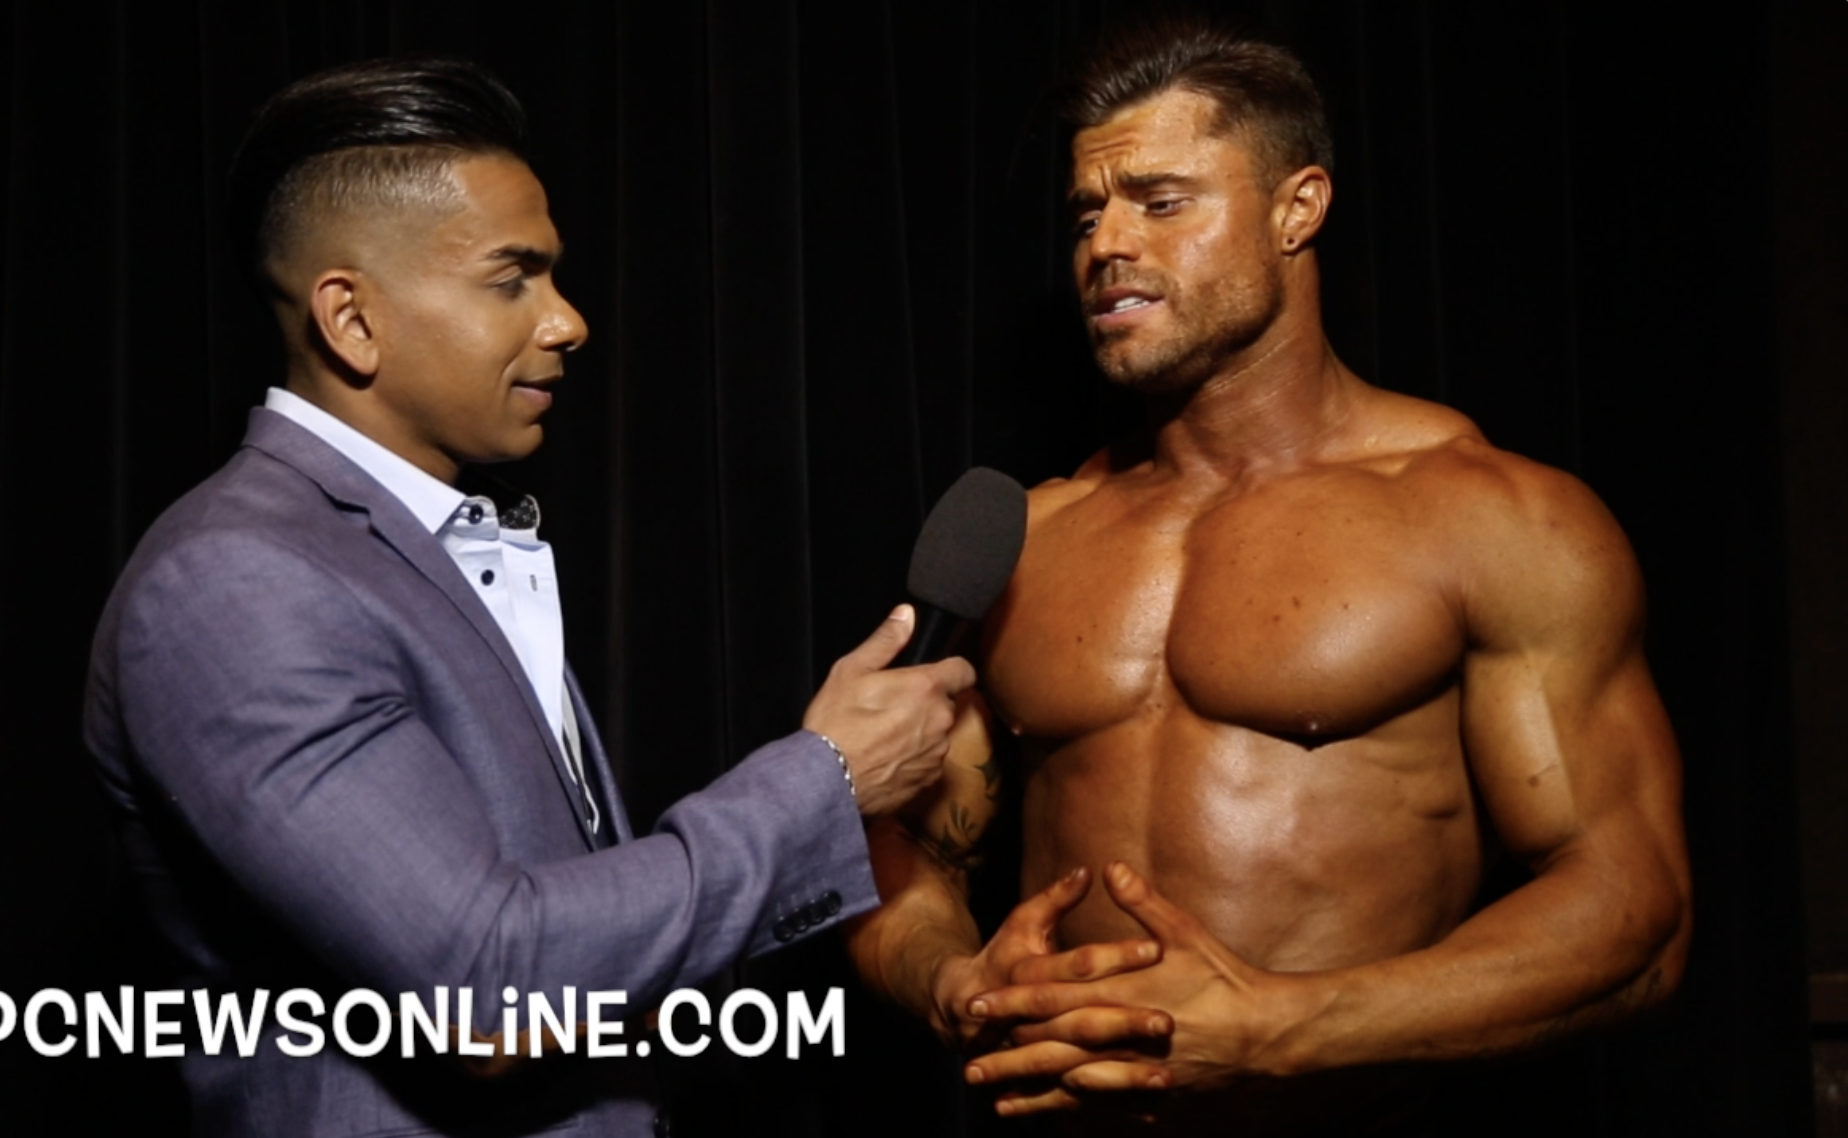 2017 NPC USA Classic Physique Overall Winner Jake Keidel Interviewed By IFBB Pro Freddy Mac